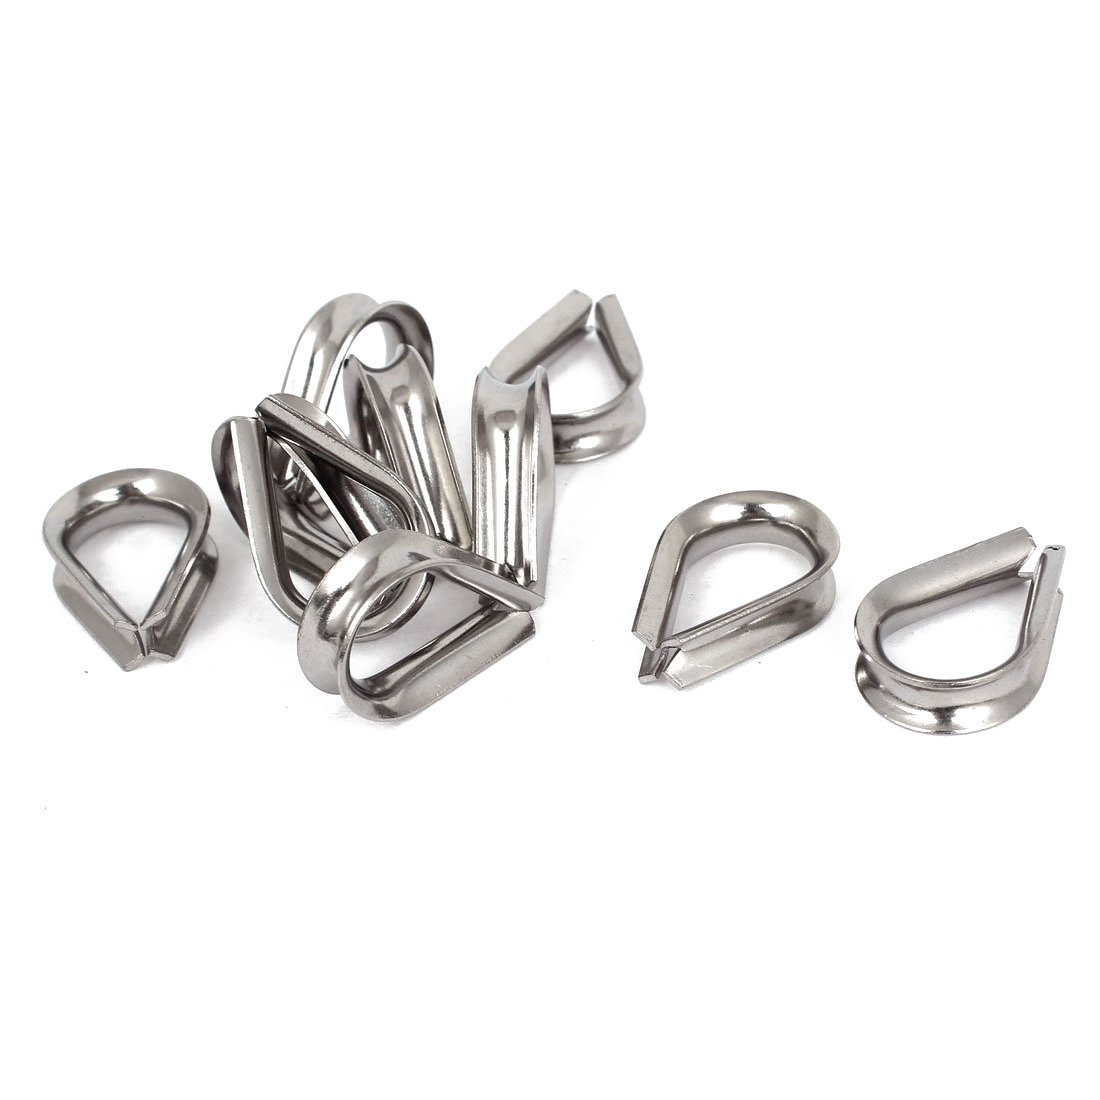 Cable Thimbles - SODIAL(R) Stainless Steel 6mm Wire Rope Cable Thimbles Silver Tone 10Pcs